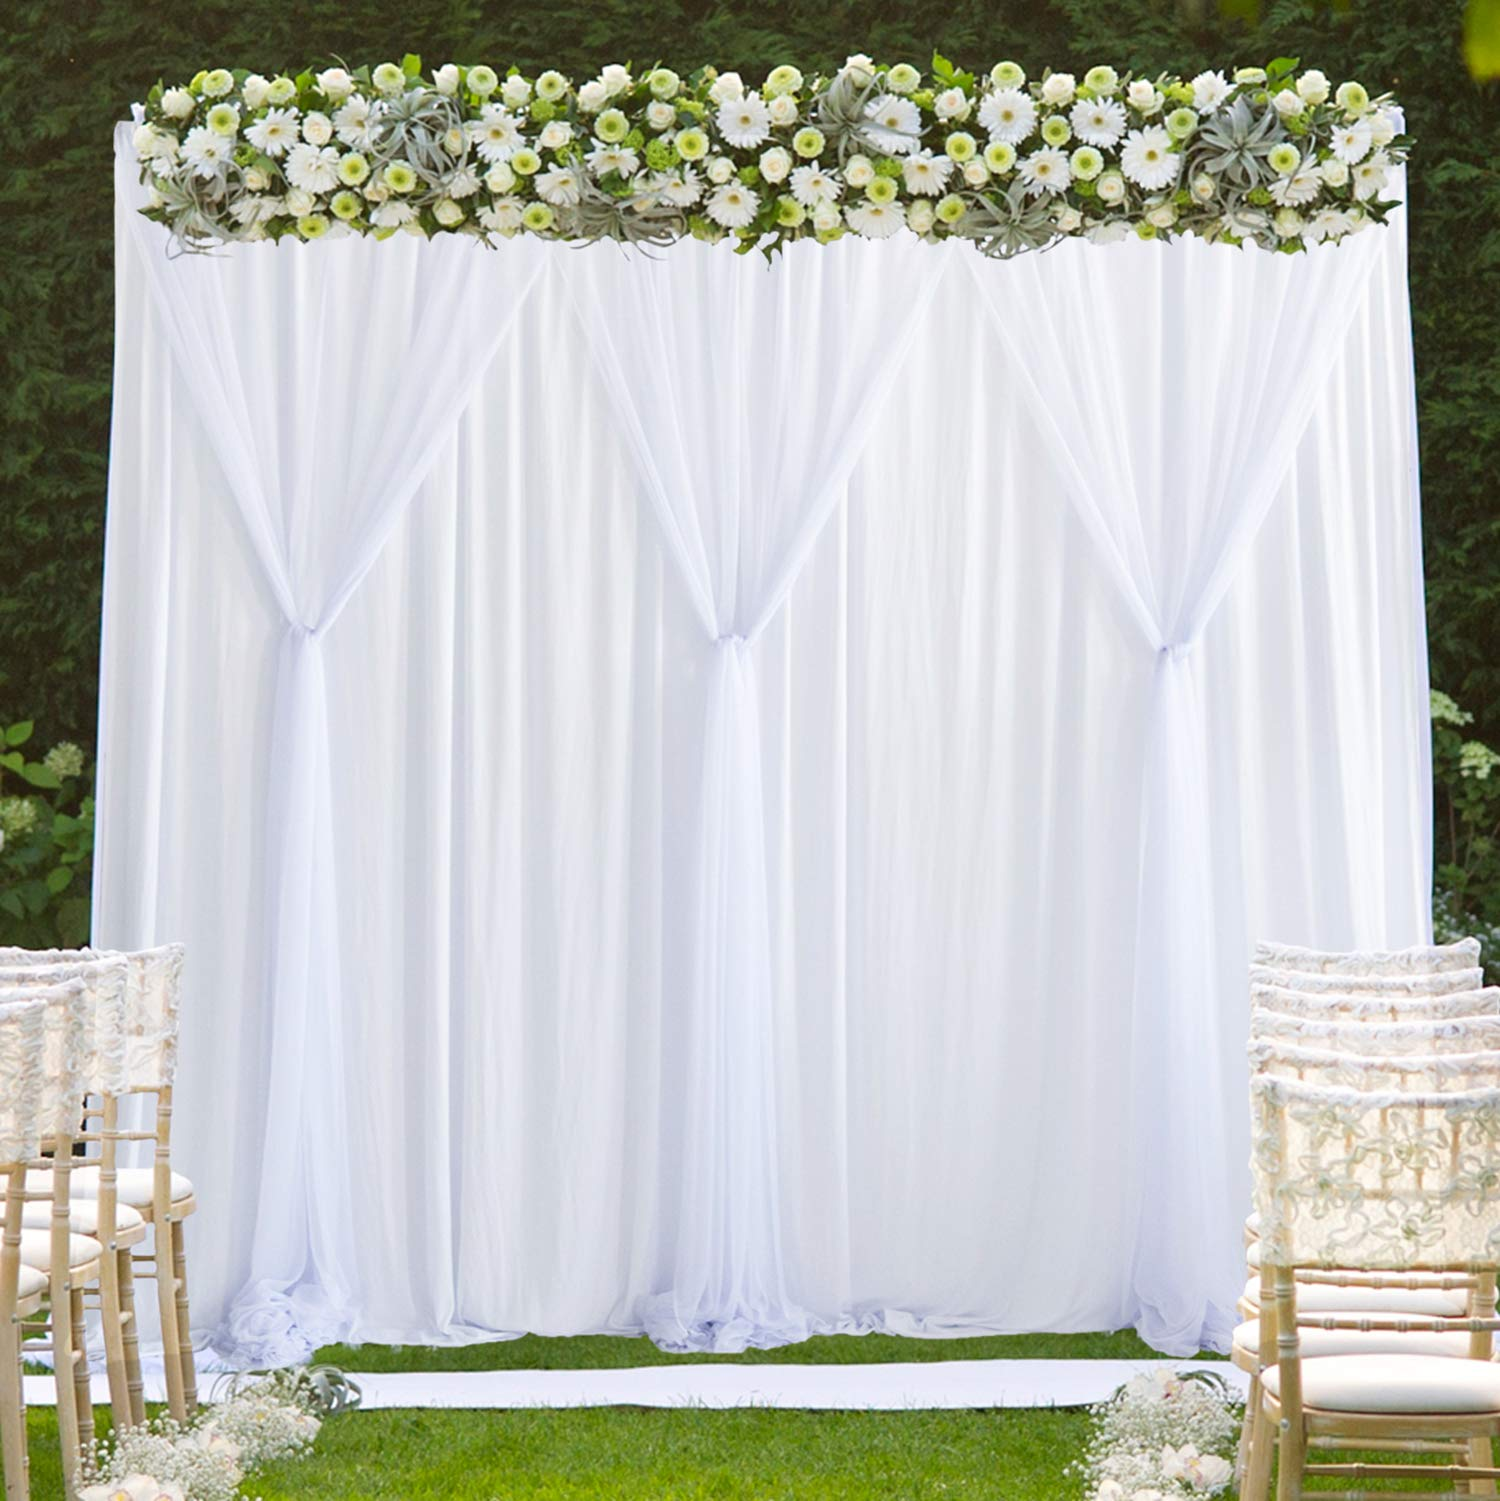 White Tulle Backdrop Curtains Photo Backdrop for Weddings Birthday Parties Baby Shower Photography Drape Backdrop Stage Curtain 10 ft X 7 ft by Tao-Ge